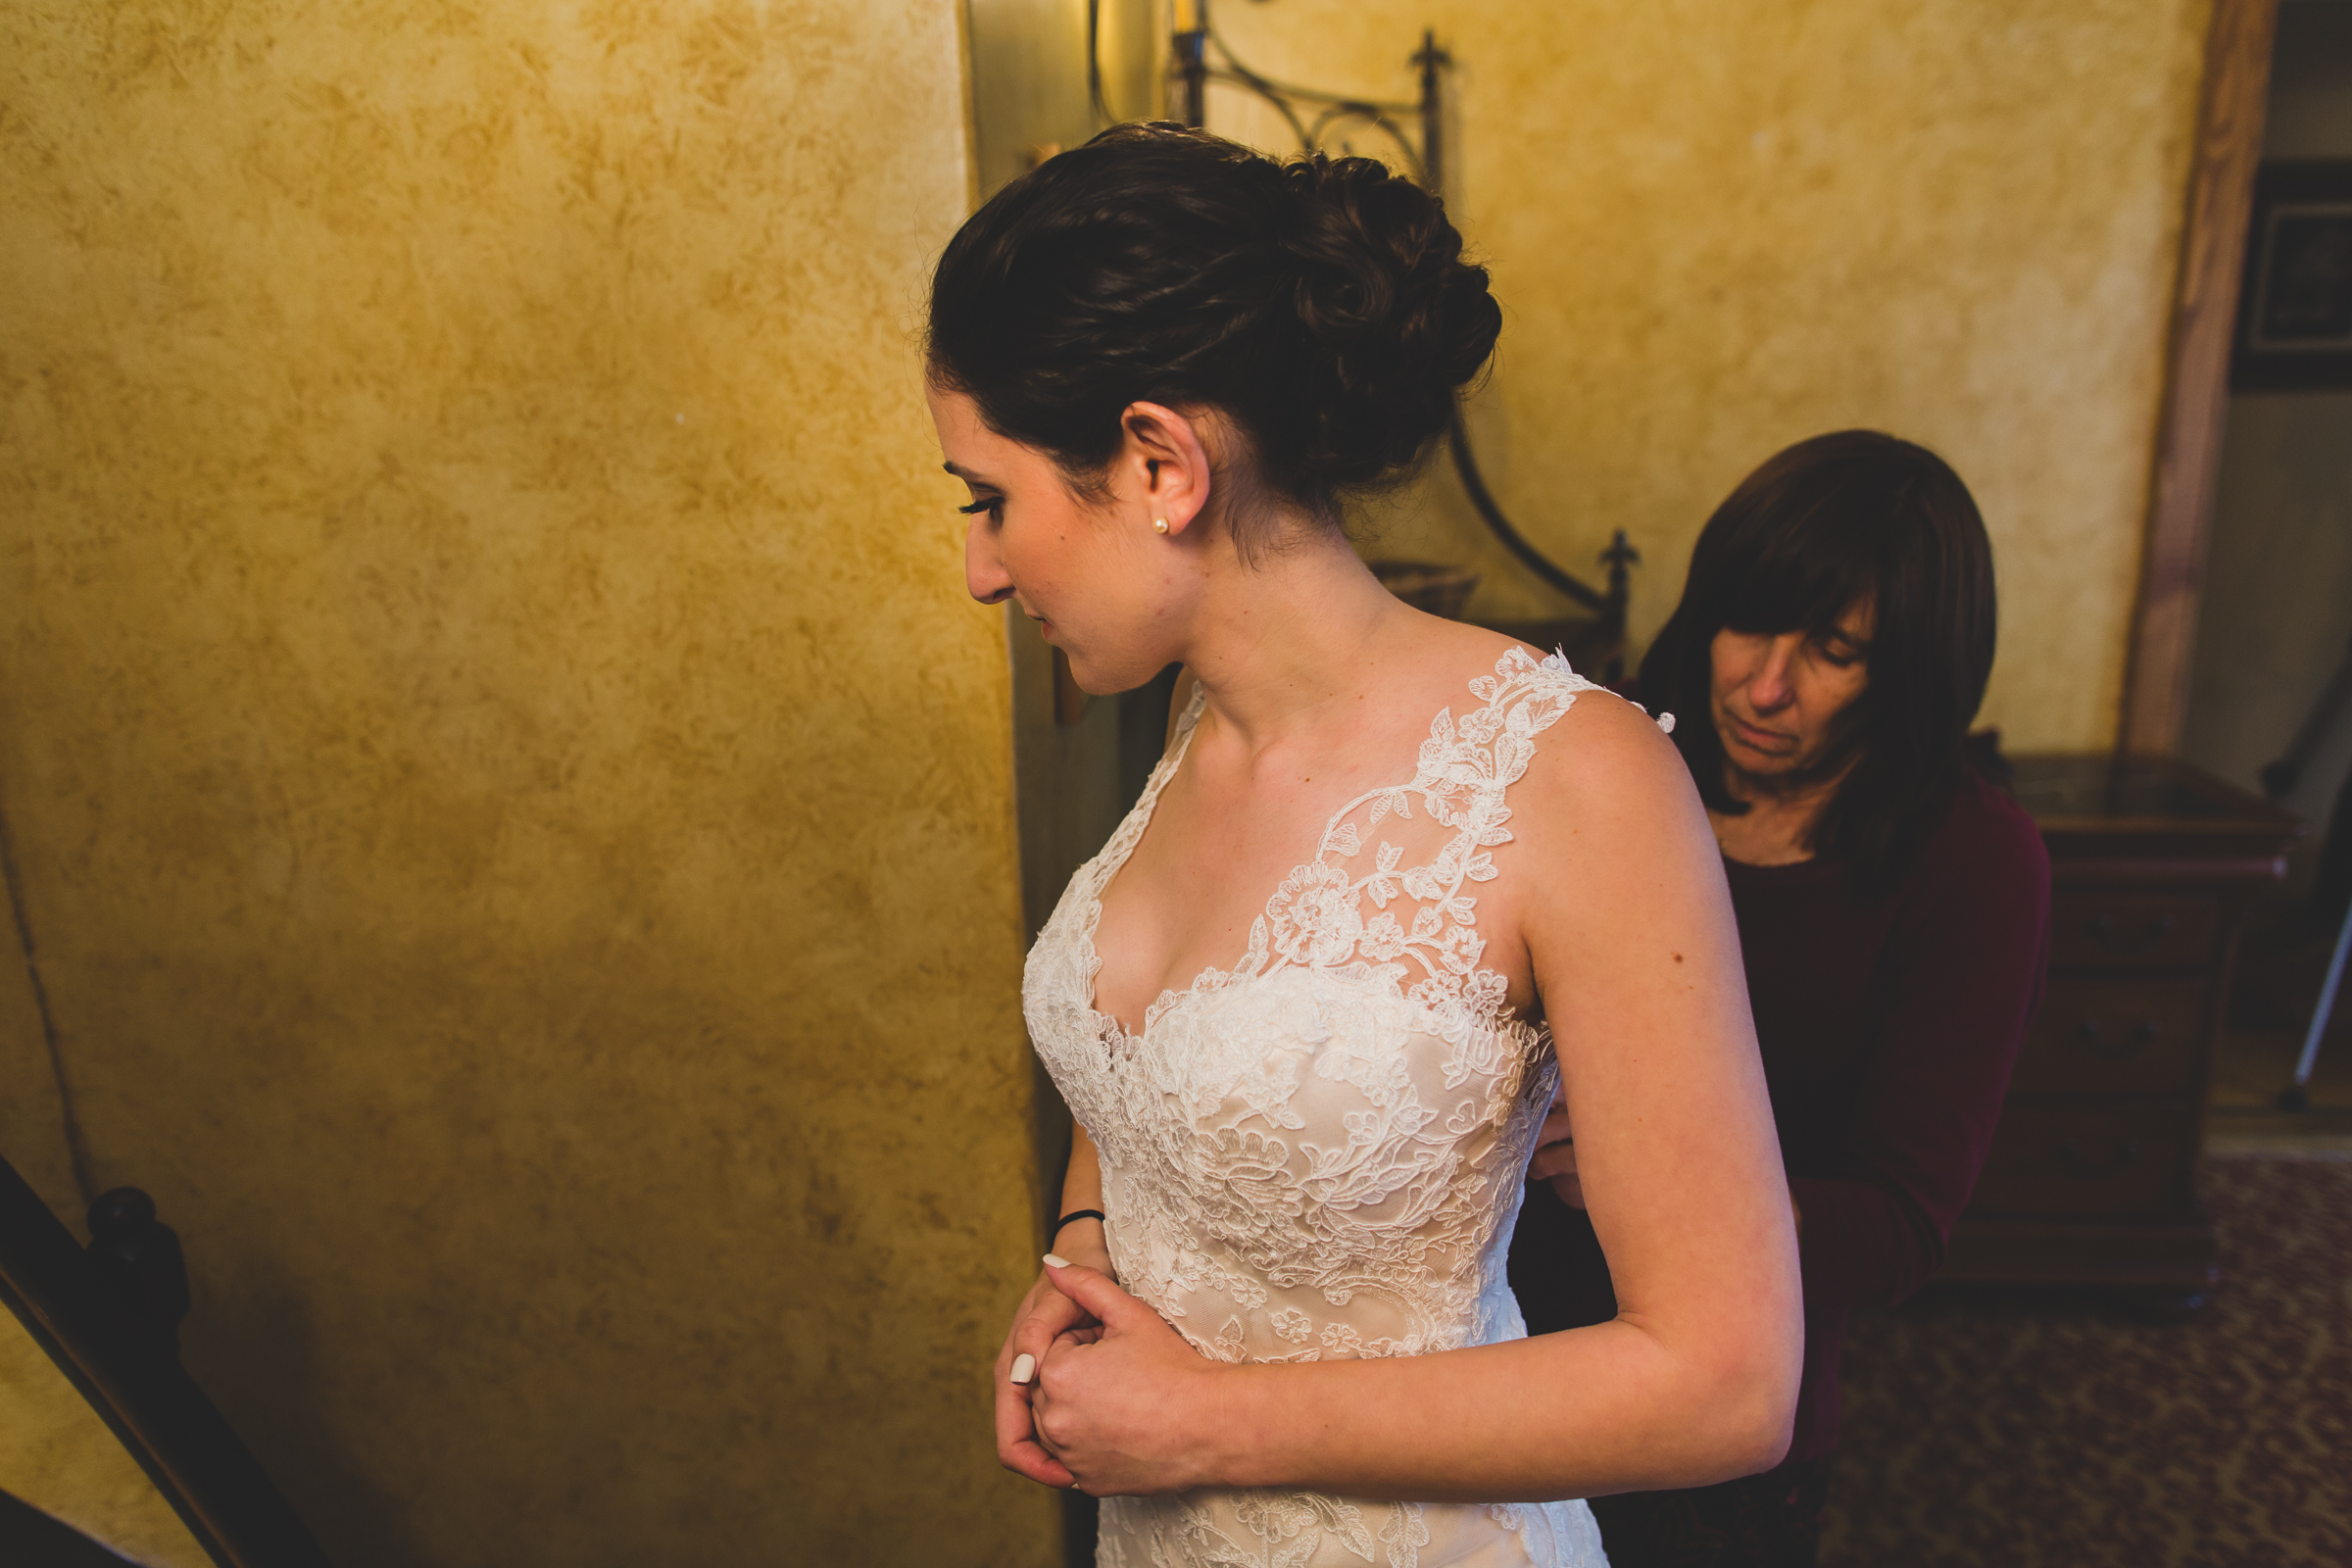 Pleasantdale-Chateau-New-Jersey-Wedding-NJ-and-New-York-Documentary-Wedding-Photographer-11.jpg